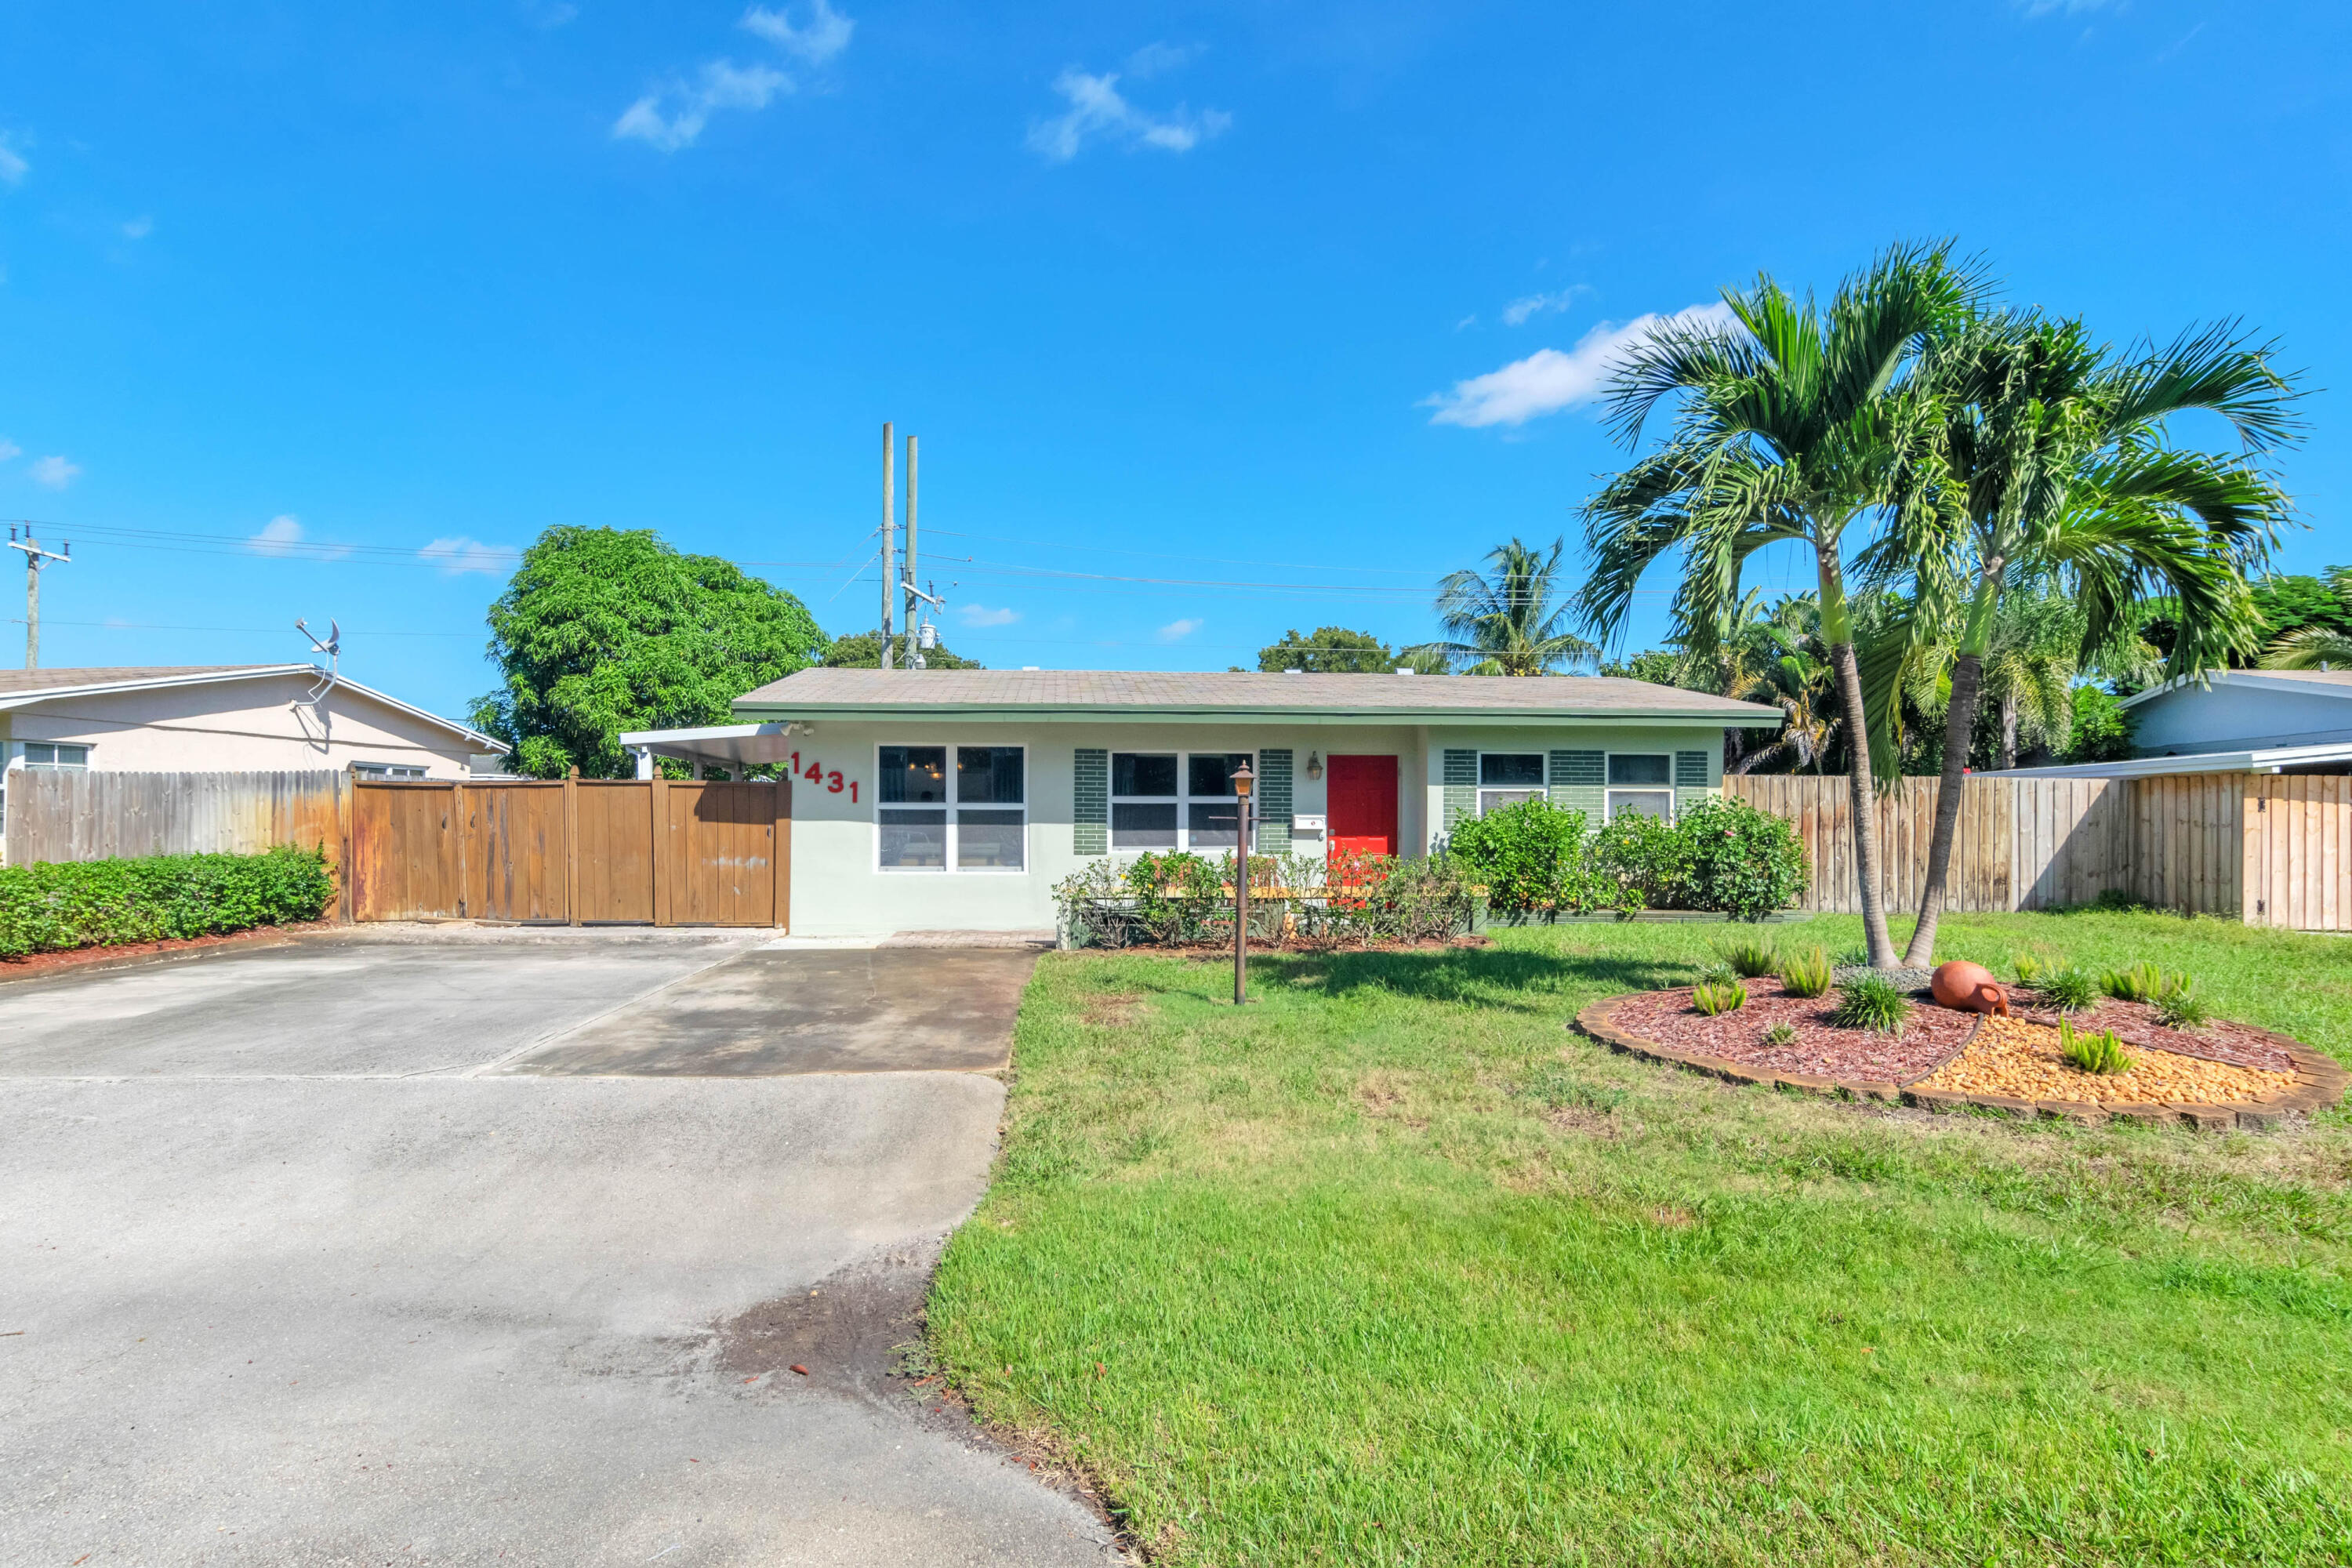 Come see this Beautiful 2/2 in East Pompano Beach. Home features impact windows, Brand new A/C, Custom designer kitchen, updated floors throughout, triple driveway, amazing backyard for entertaining, and many more features. Very easily made into 3 bedroom home with minimal work.  This home is located just off Federal highway close to shopping, beach, great parks, and amazing restaurants. There is no HOA so bring your boats and toys. 5 minute ride to boat ramp. Call today for your private showings.